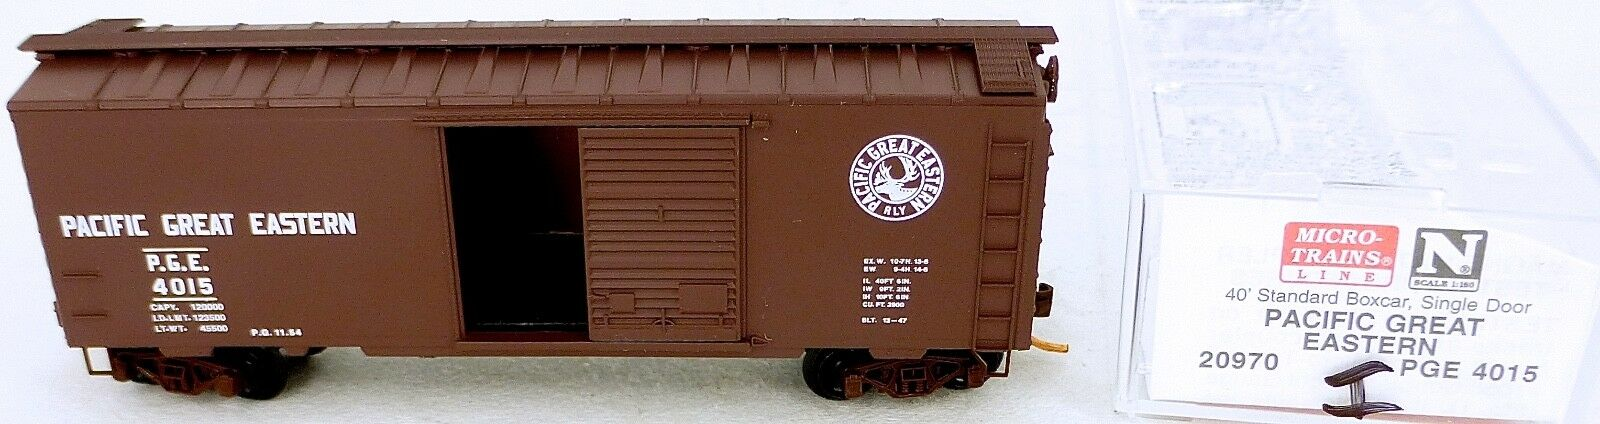 40´ St Boxcar Pacific Great Eastern 4015 Micro Trains Line 20970 i n 1 160 d å